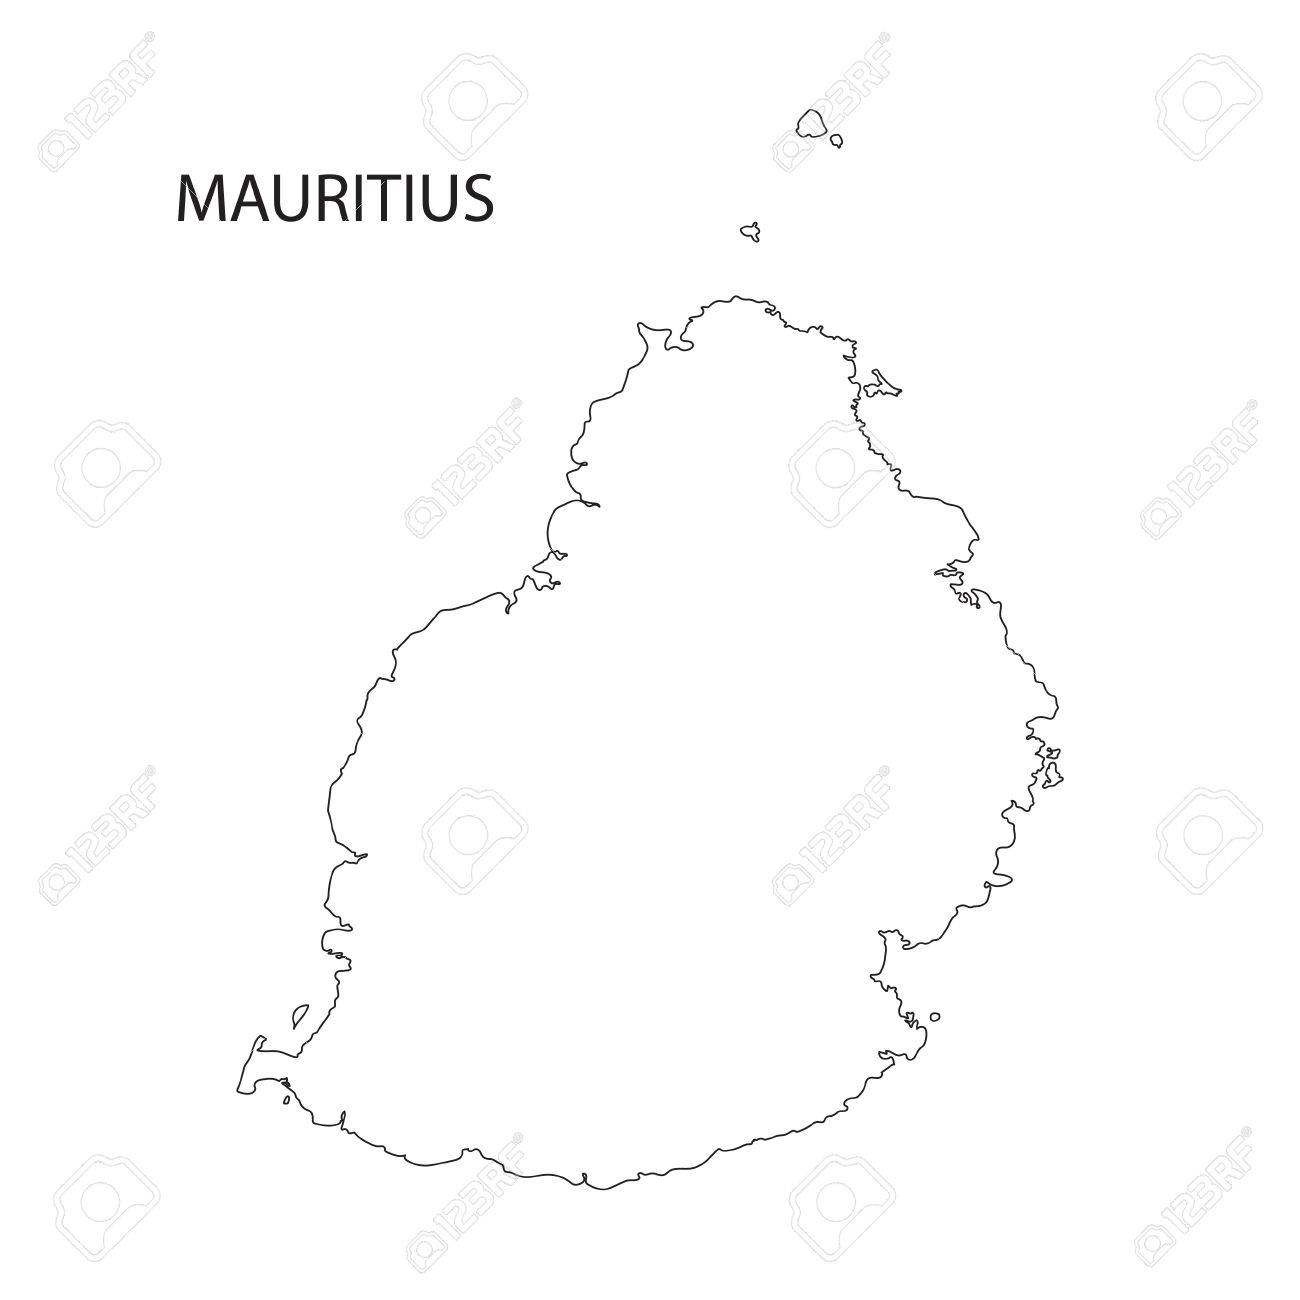 Outline Map Of Mauritius Royalty Free Cliparts, Vectors, And Stock ...